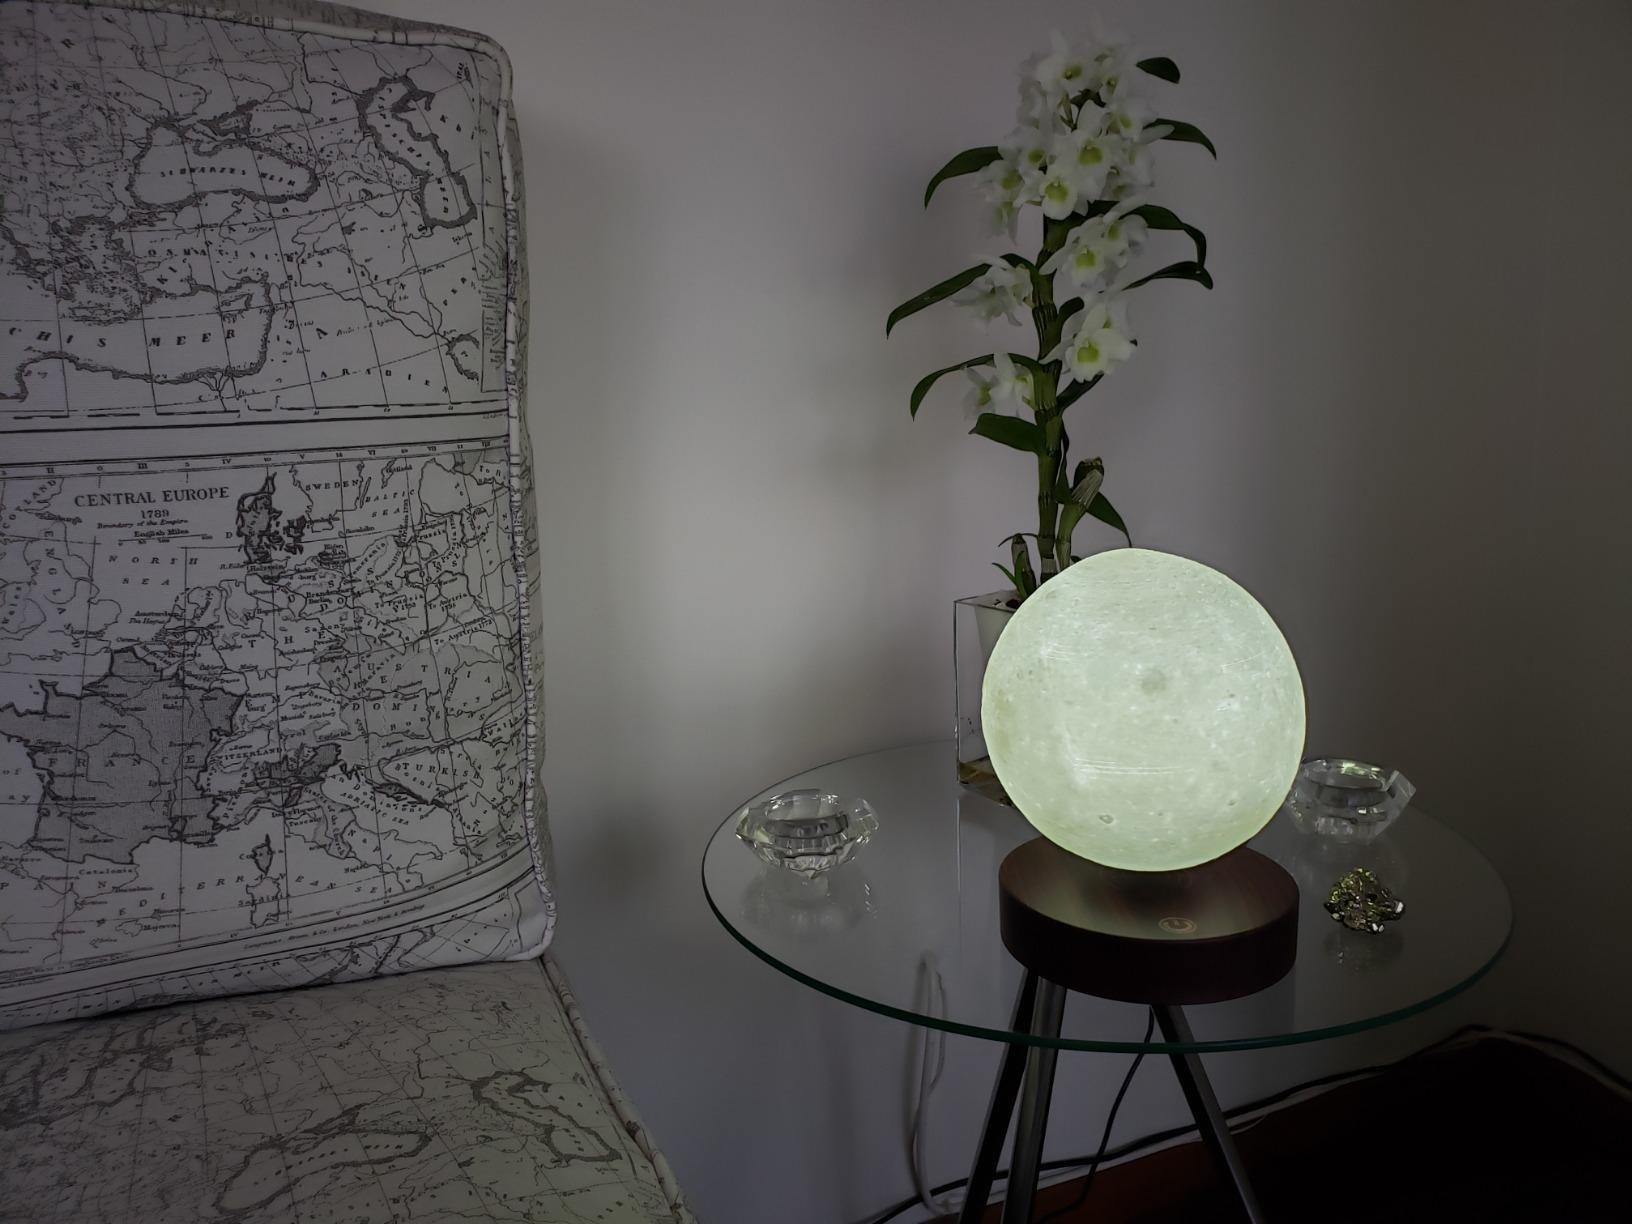 The moon lamp (complete with crater details) glowing on a side table